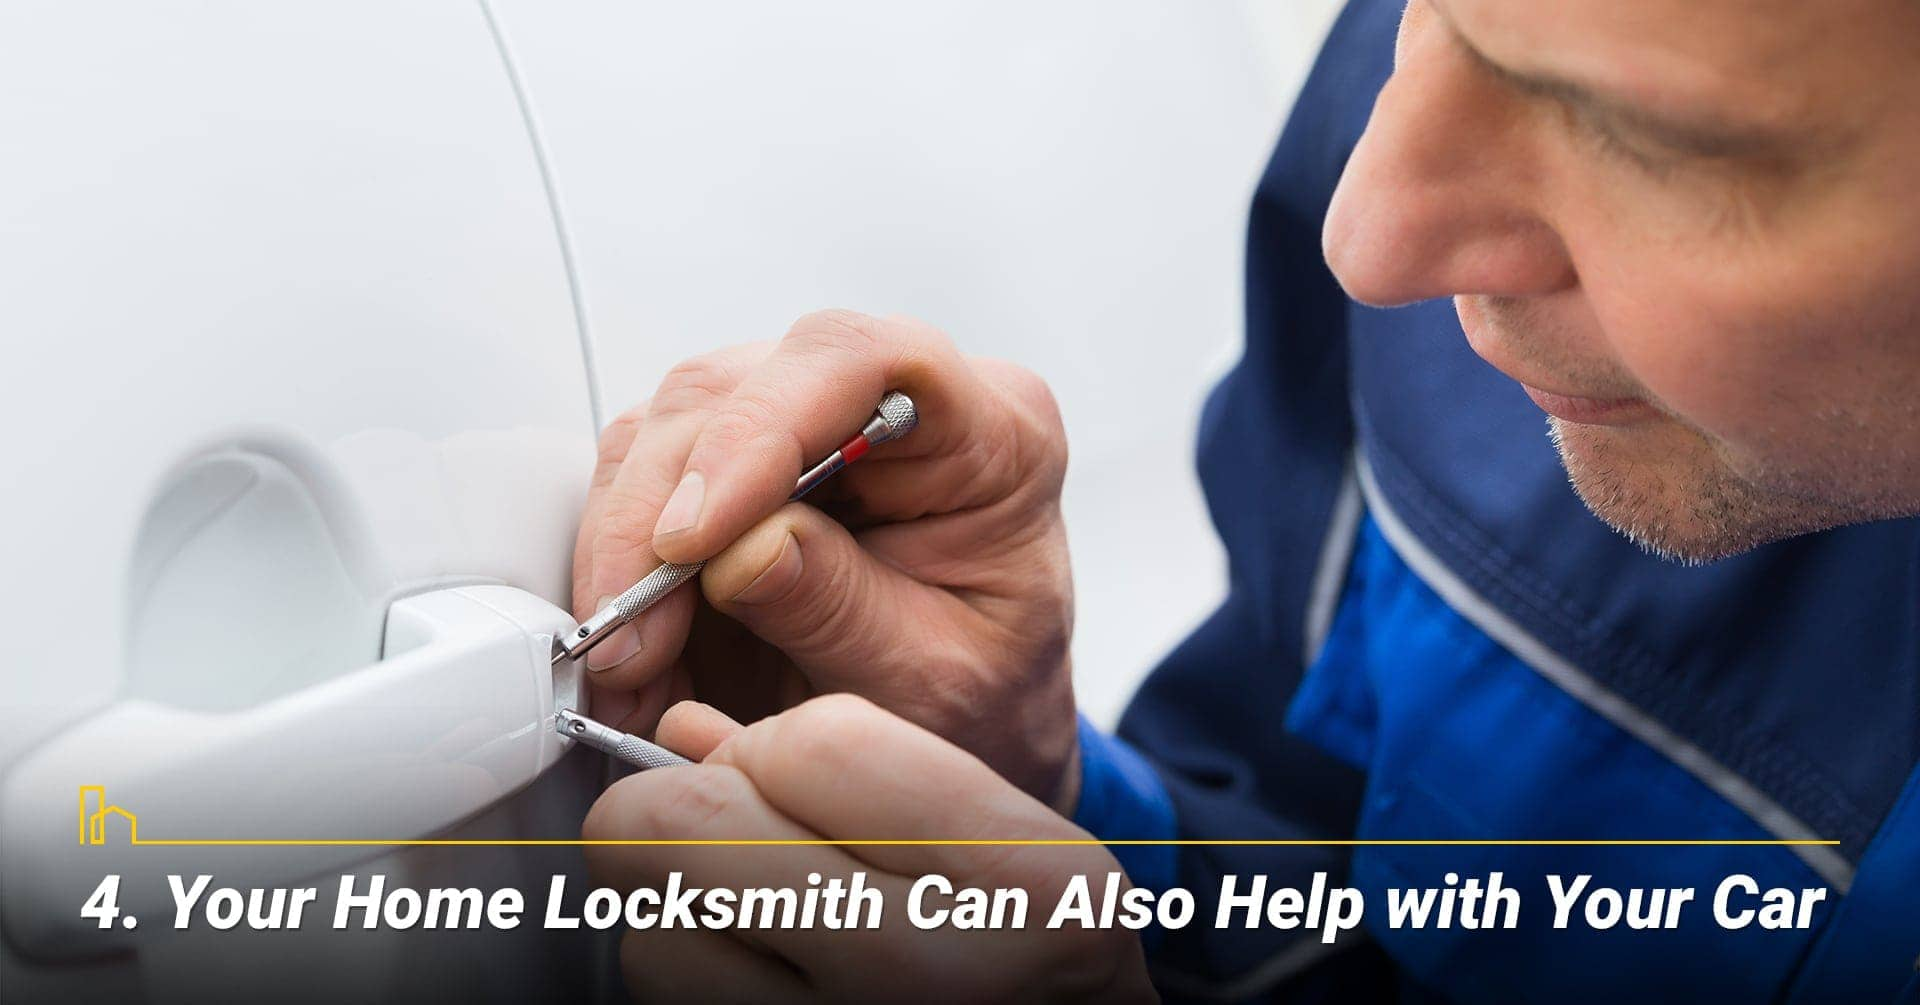 Your Home Locksmith Can Also Help with Your Car